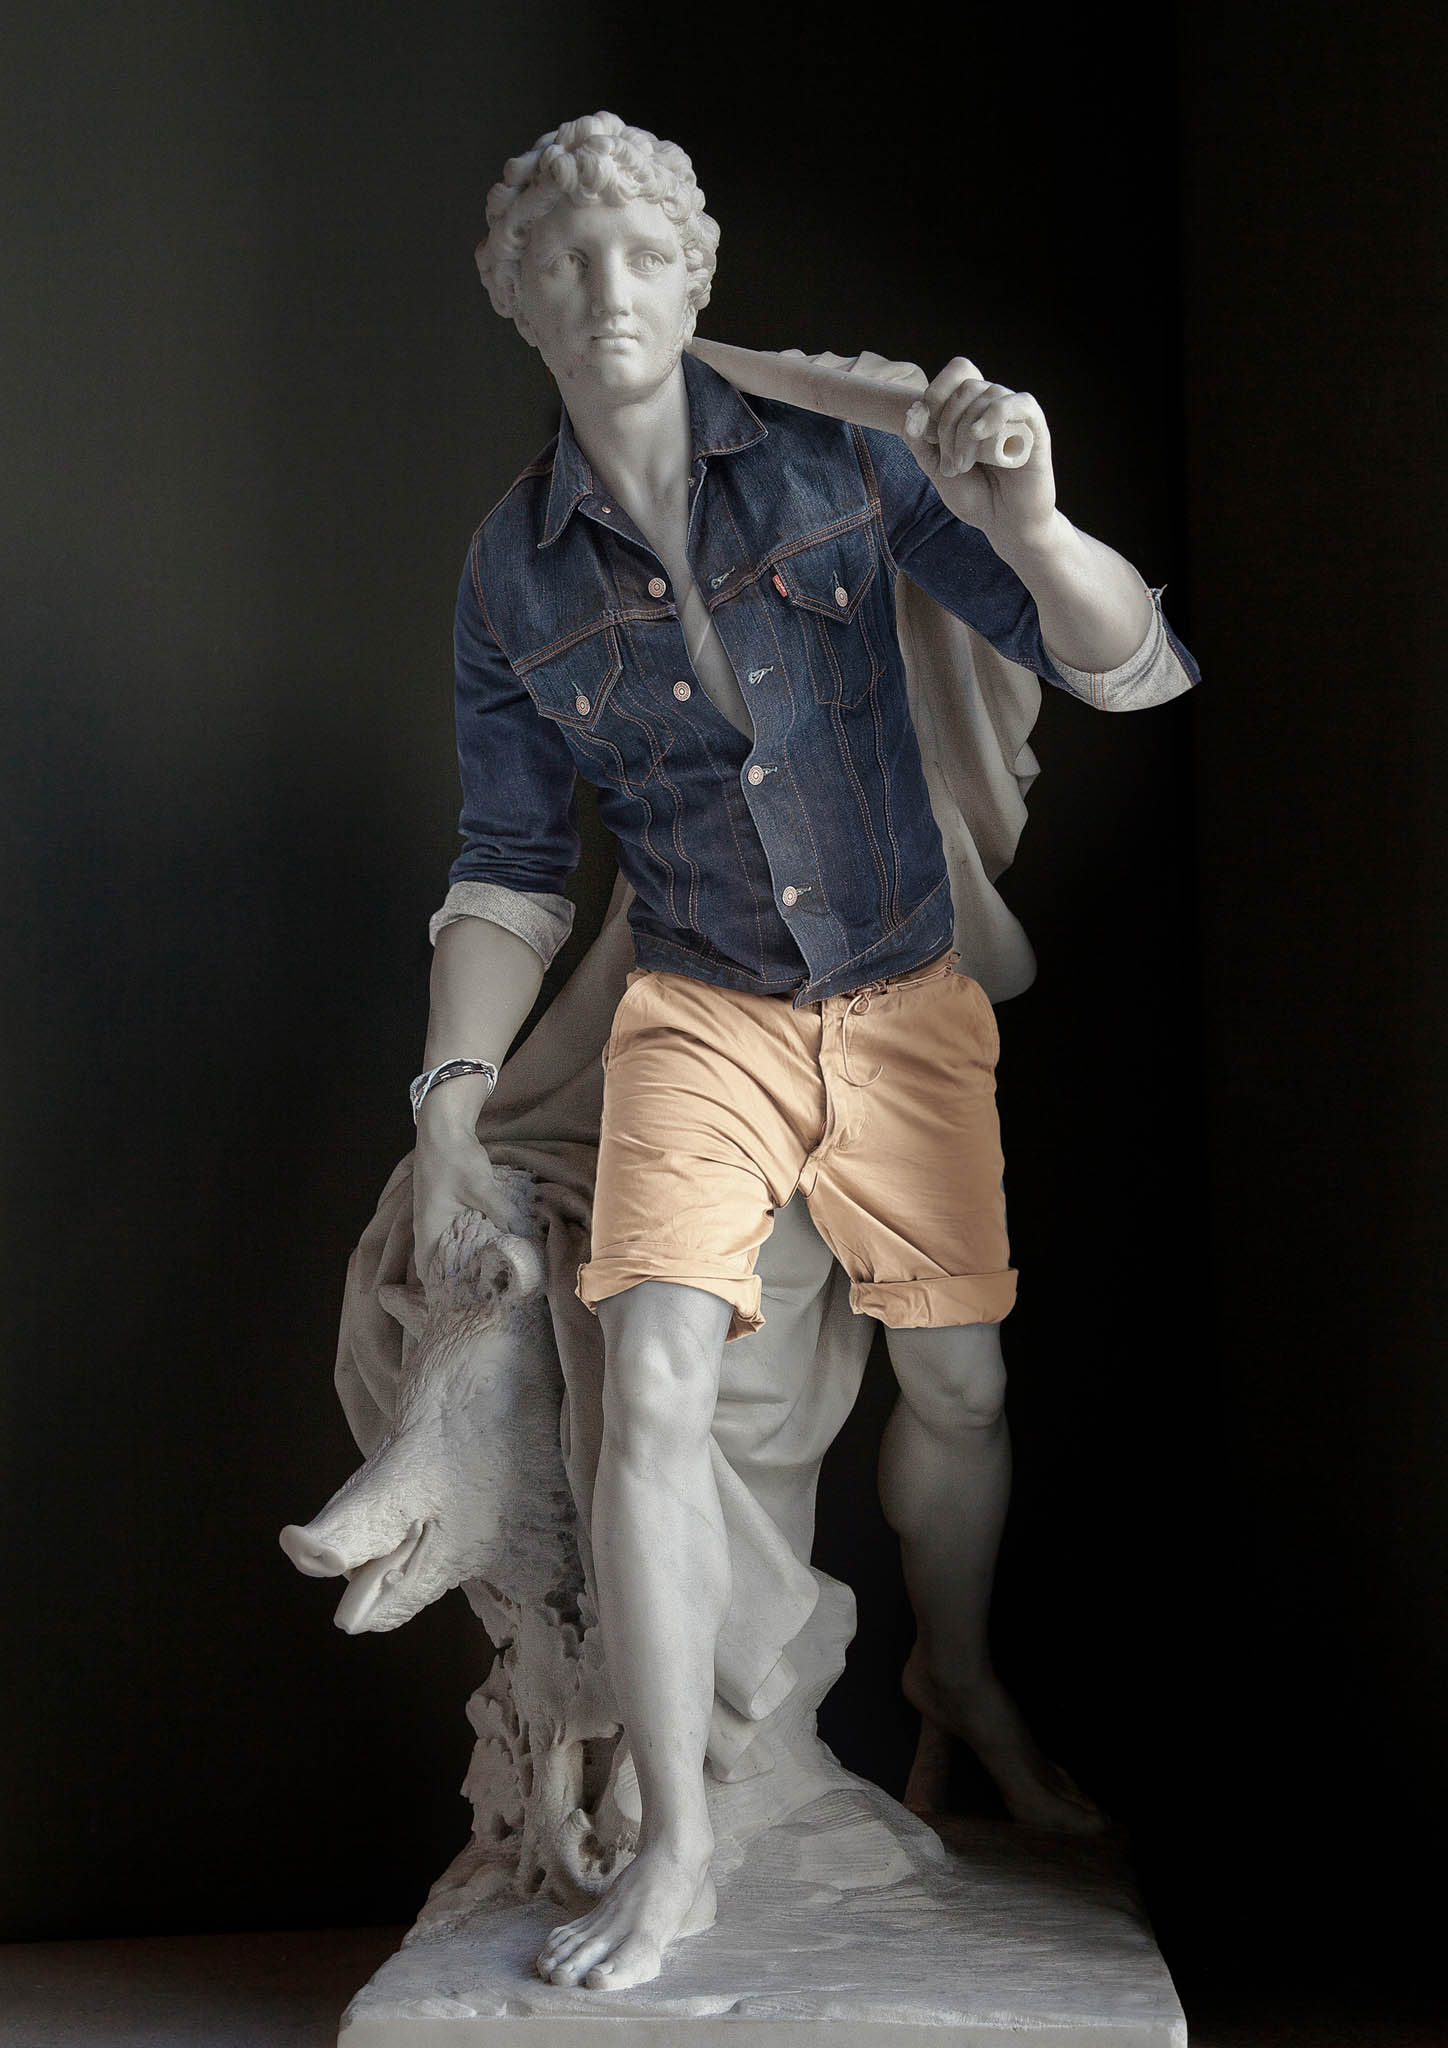 These hipster clothes on classic sculptures will leave you annoyed by art in a whole new way.